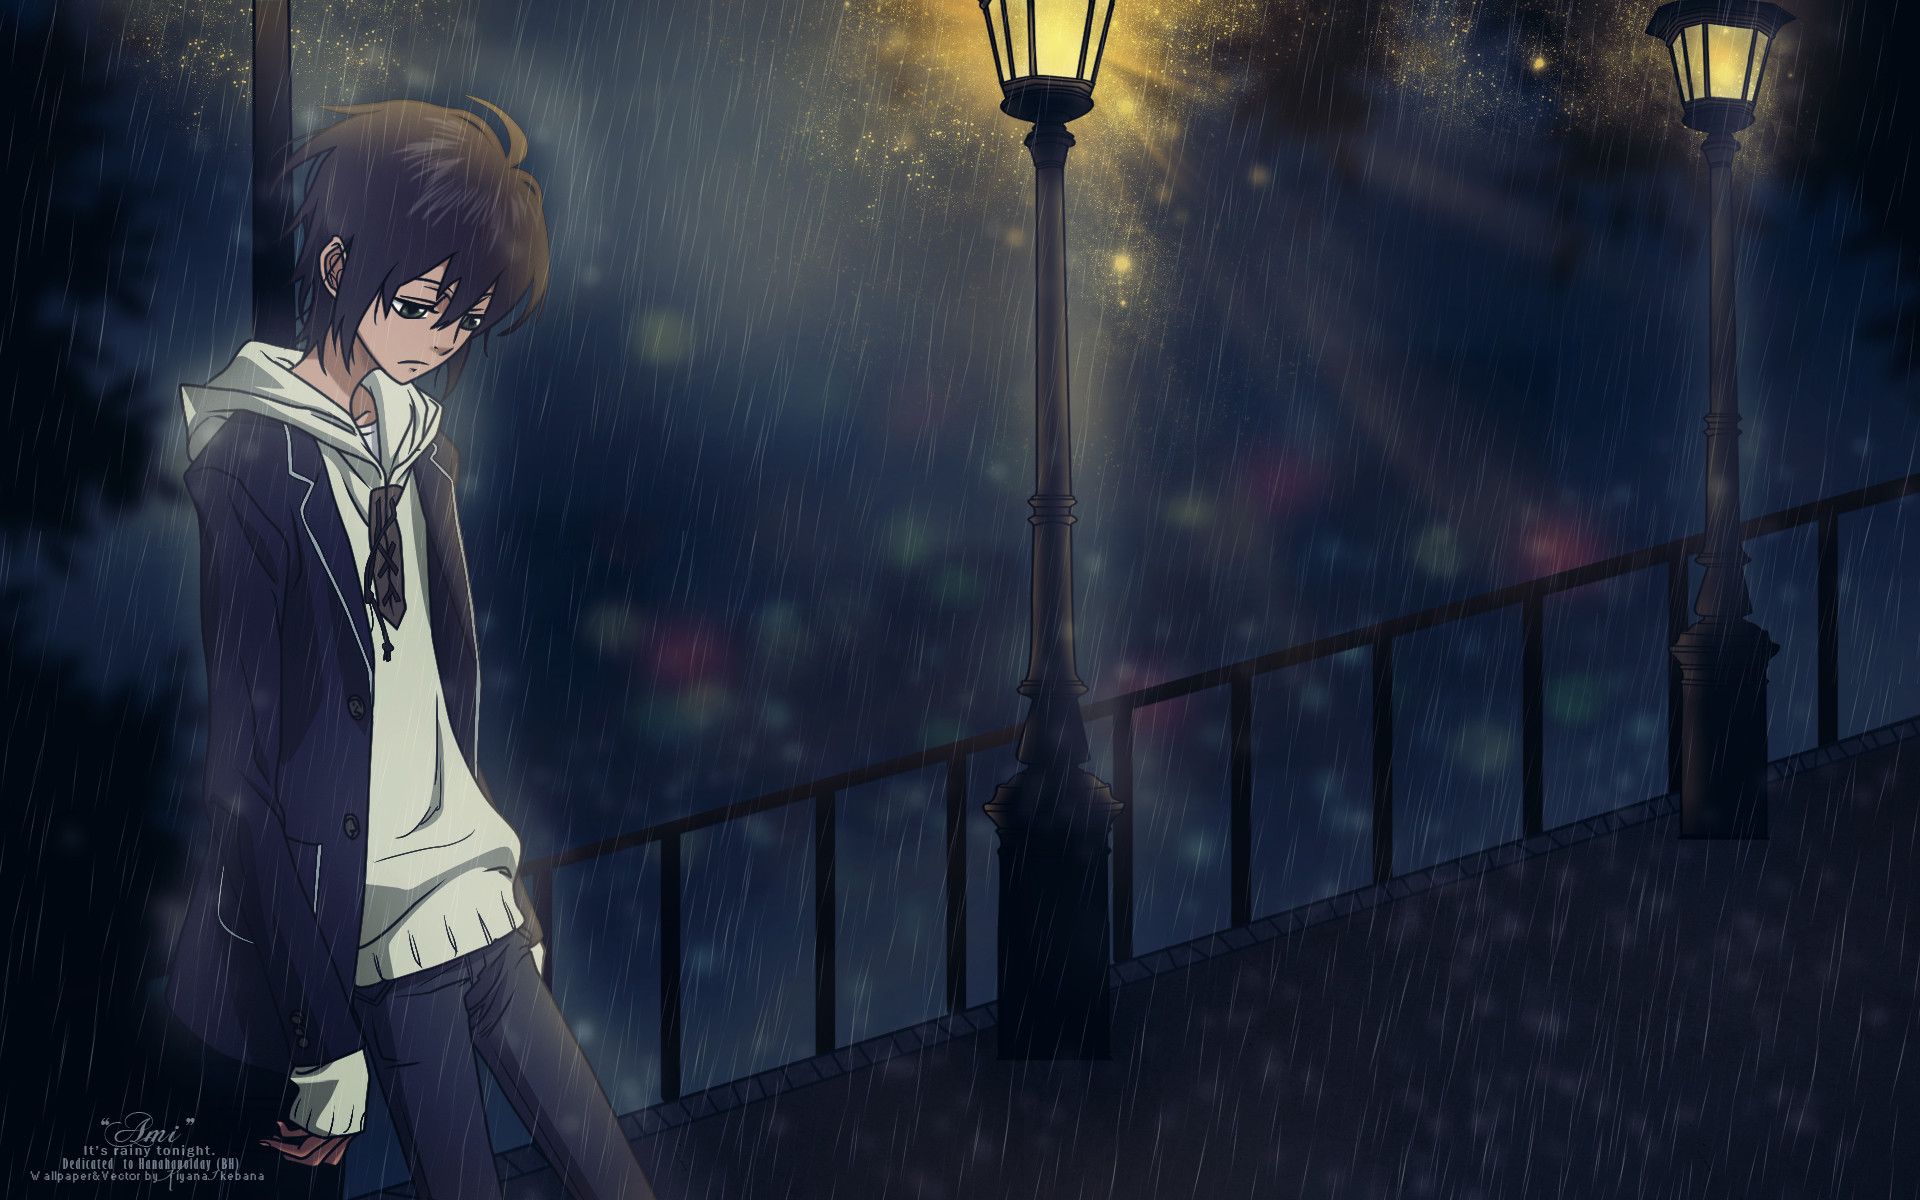 Sad anime boy wallpaper 1920x1200 tags anime kamatani yuuki nabari no ou wallpaper king of nabari voltagebd Gallery